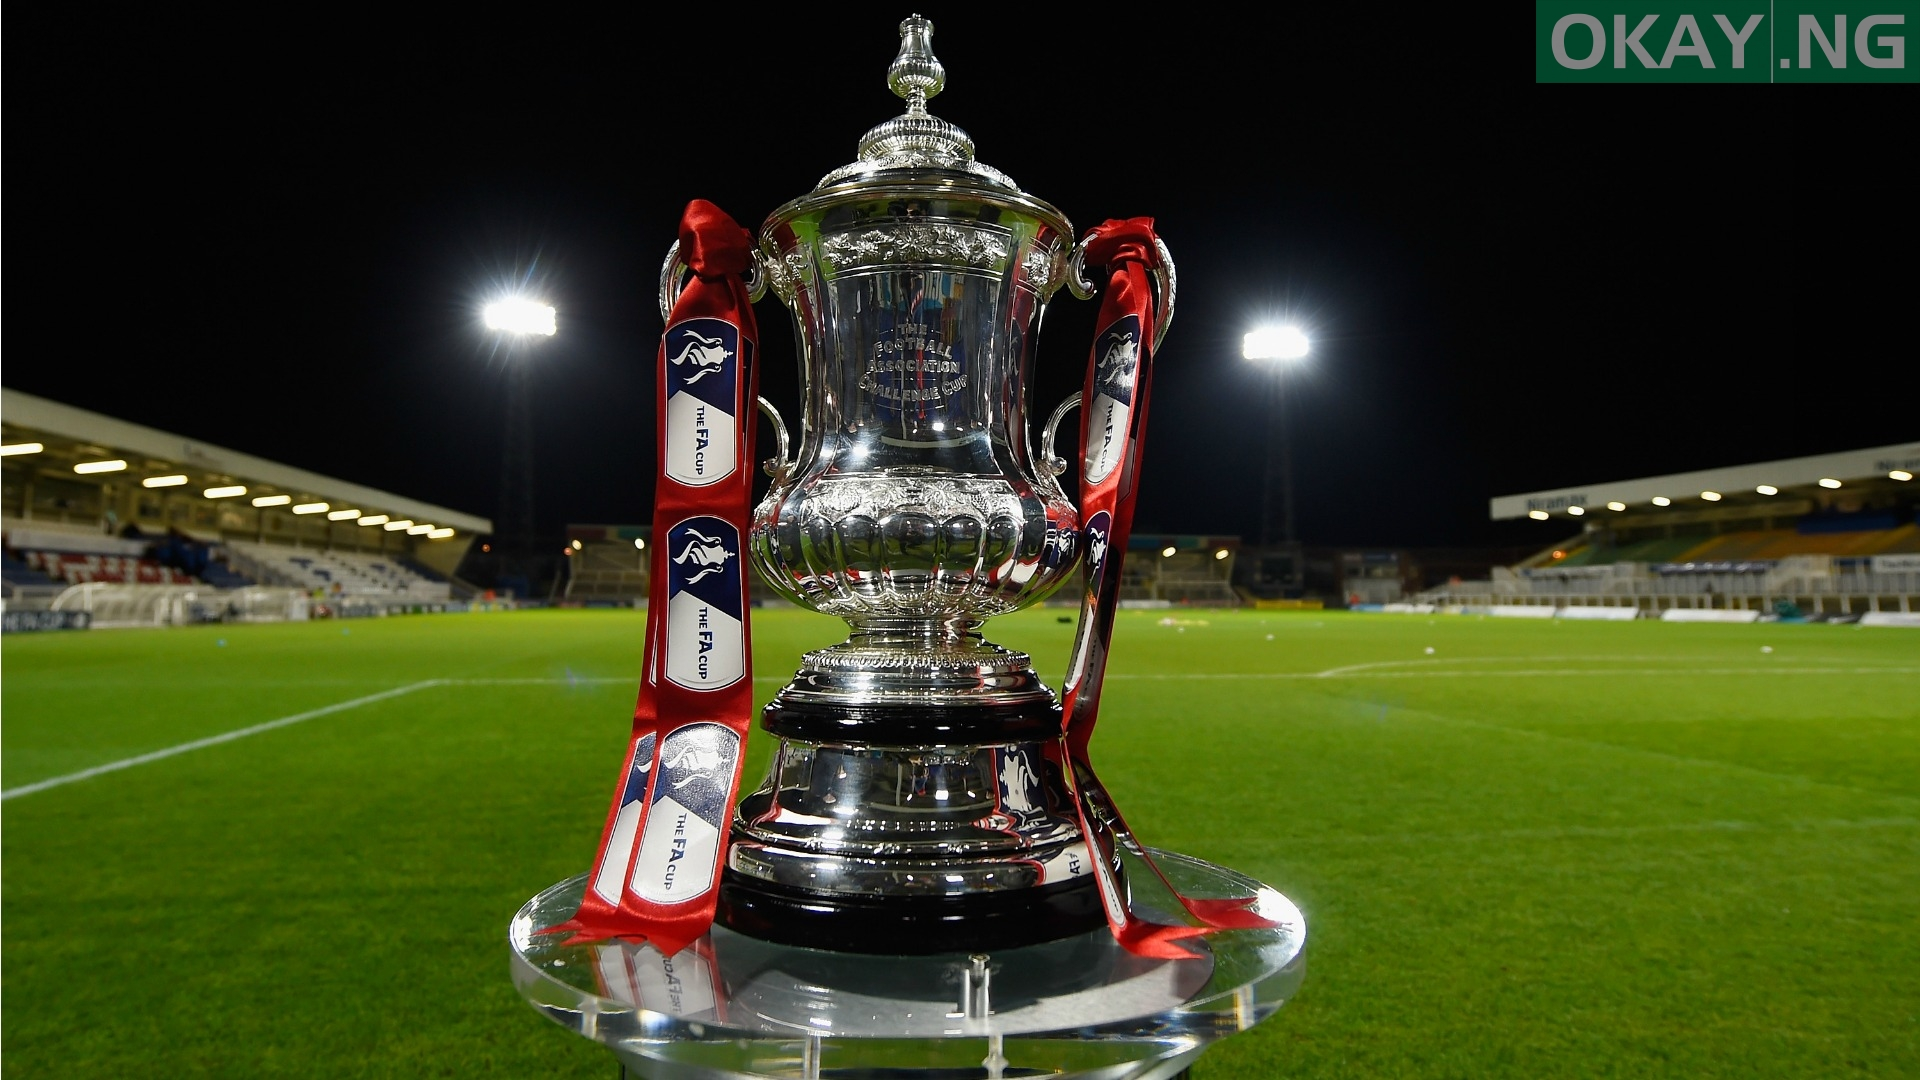 fa cup trophy 1h6bngkwouplh1tpbvpy9nc1ev - FA Cup semi-final dates released